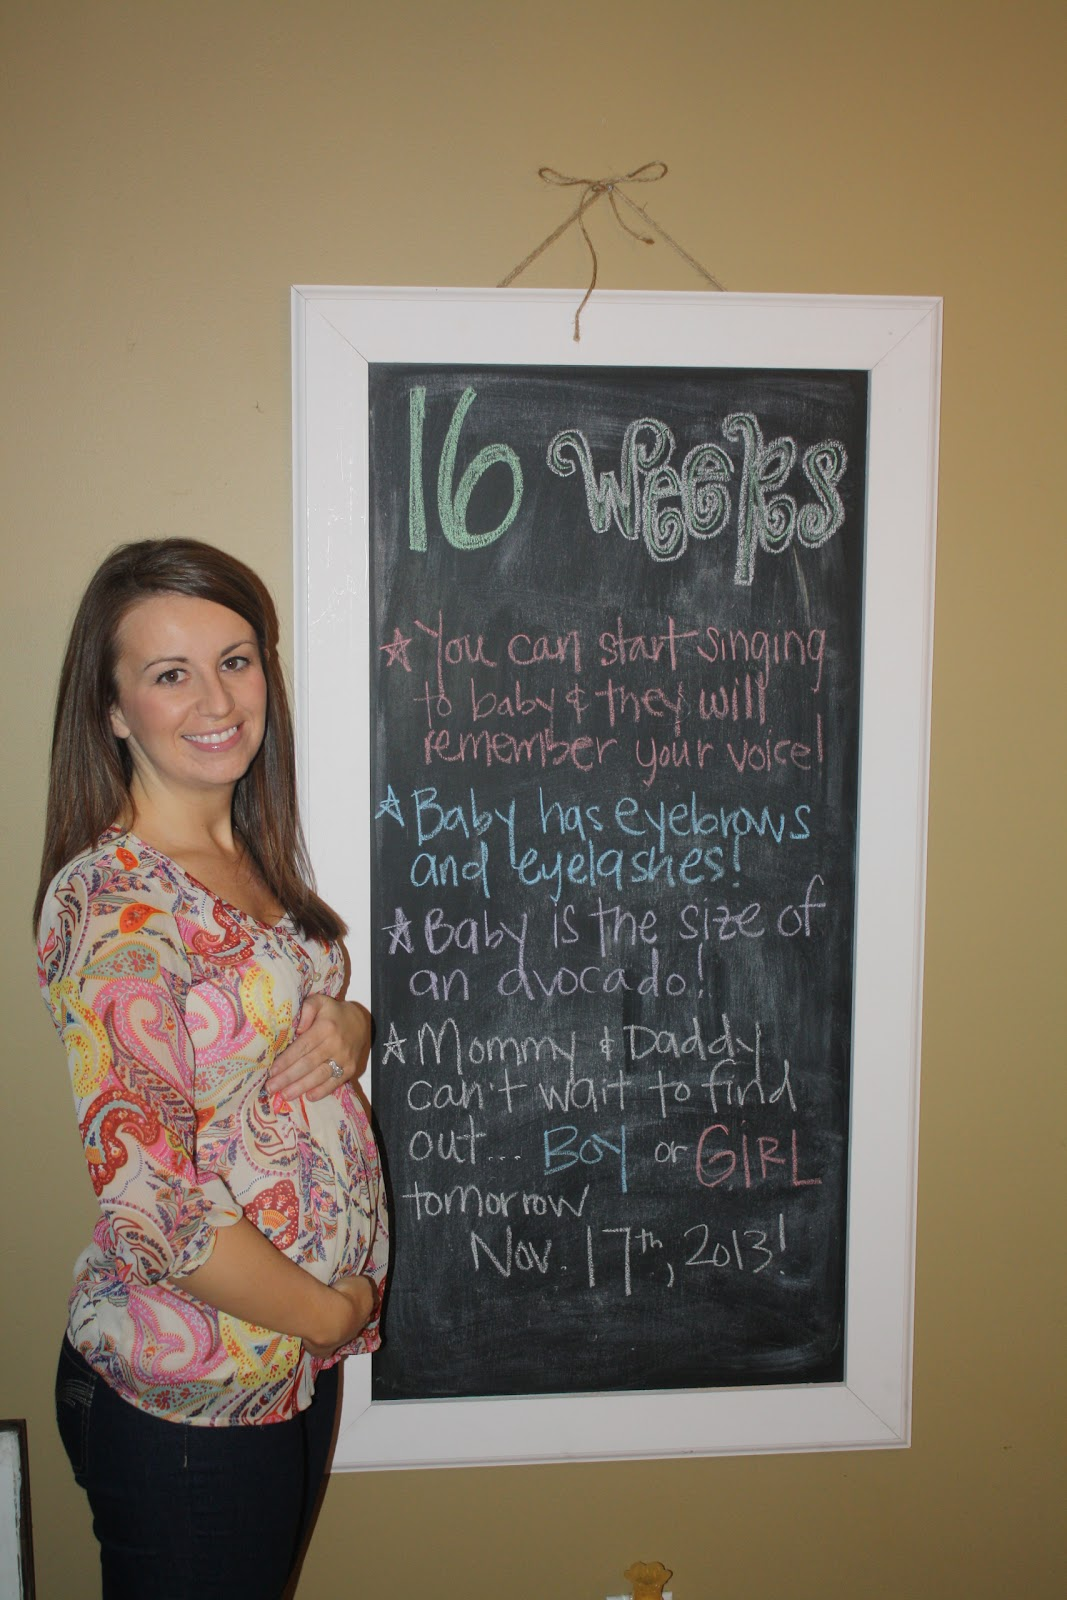 16 weeks and 1 day…heading into my 5th month of pregnancy!